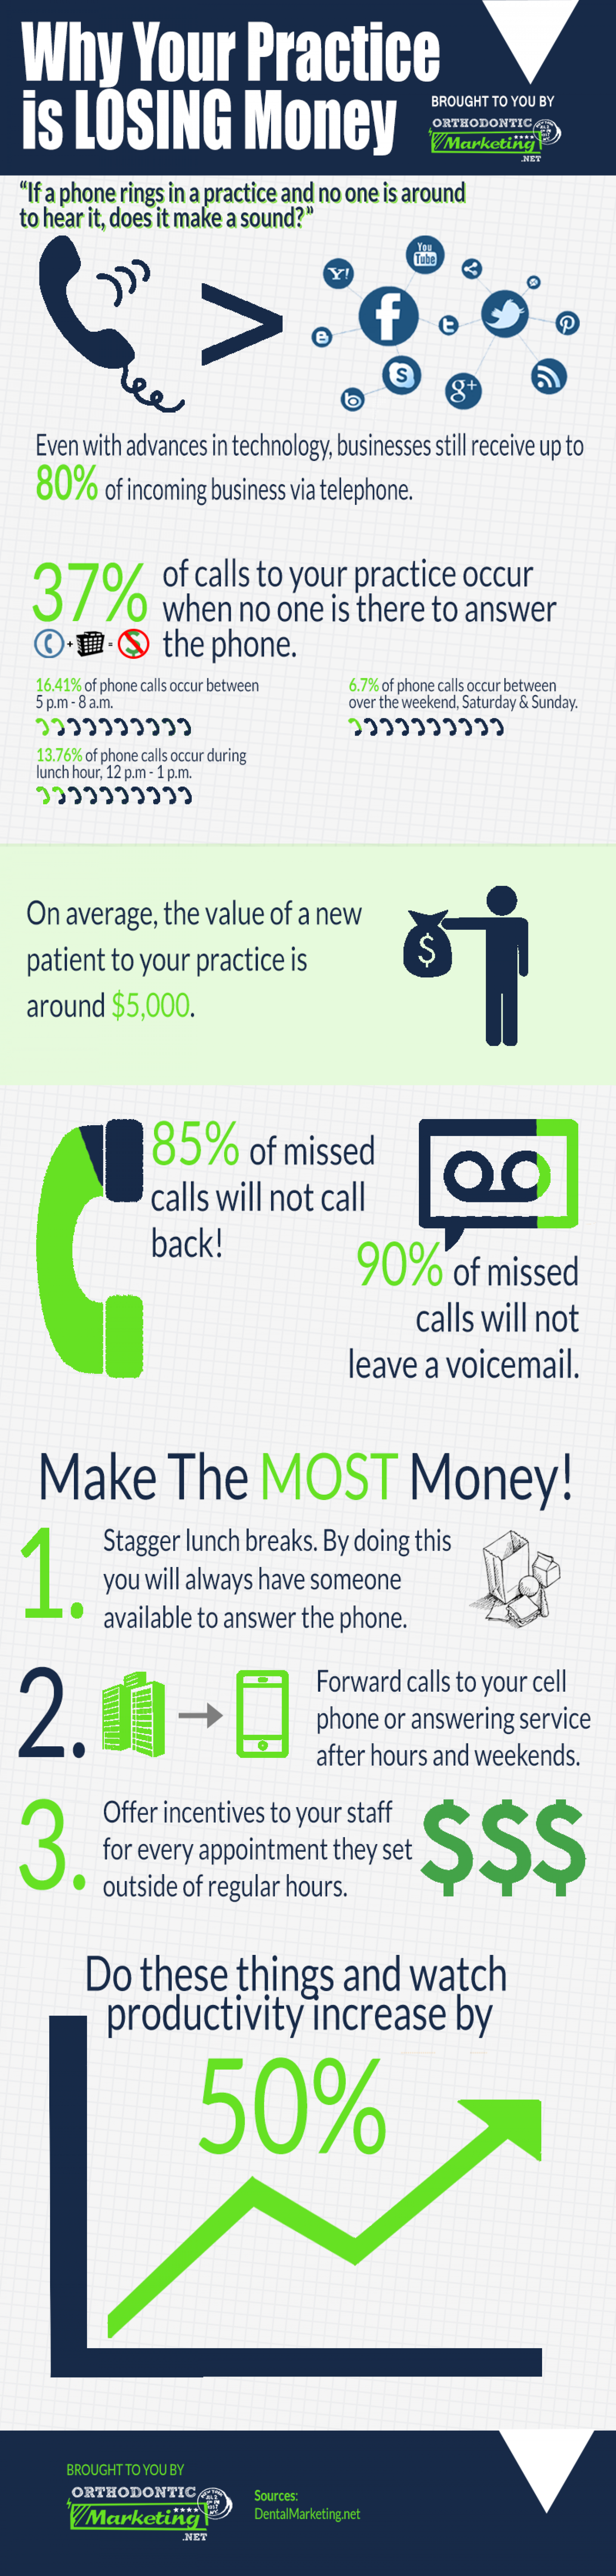 Why Are Missed Calls so Detrimental to Orthodontic Practices? Infographic